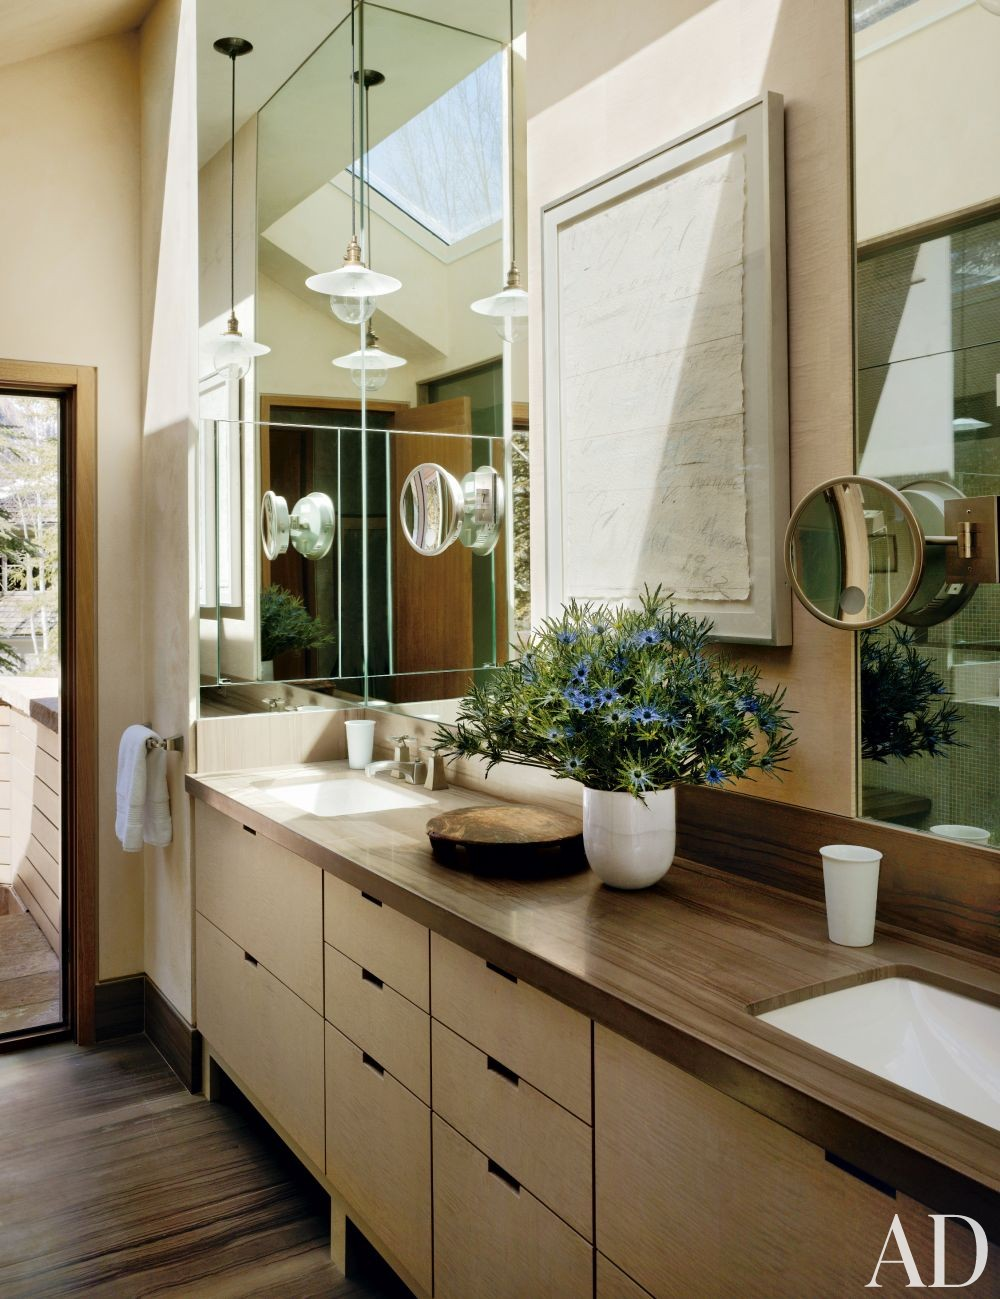 Rustic Bathroom by Stephen Sills Assoc. and Menendez Architects in Aspen, Colorado